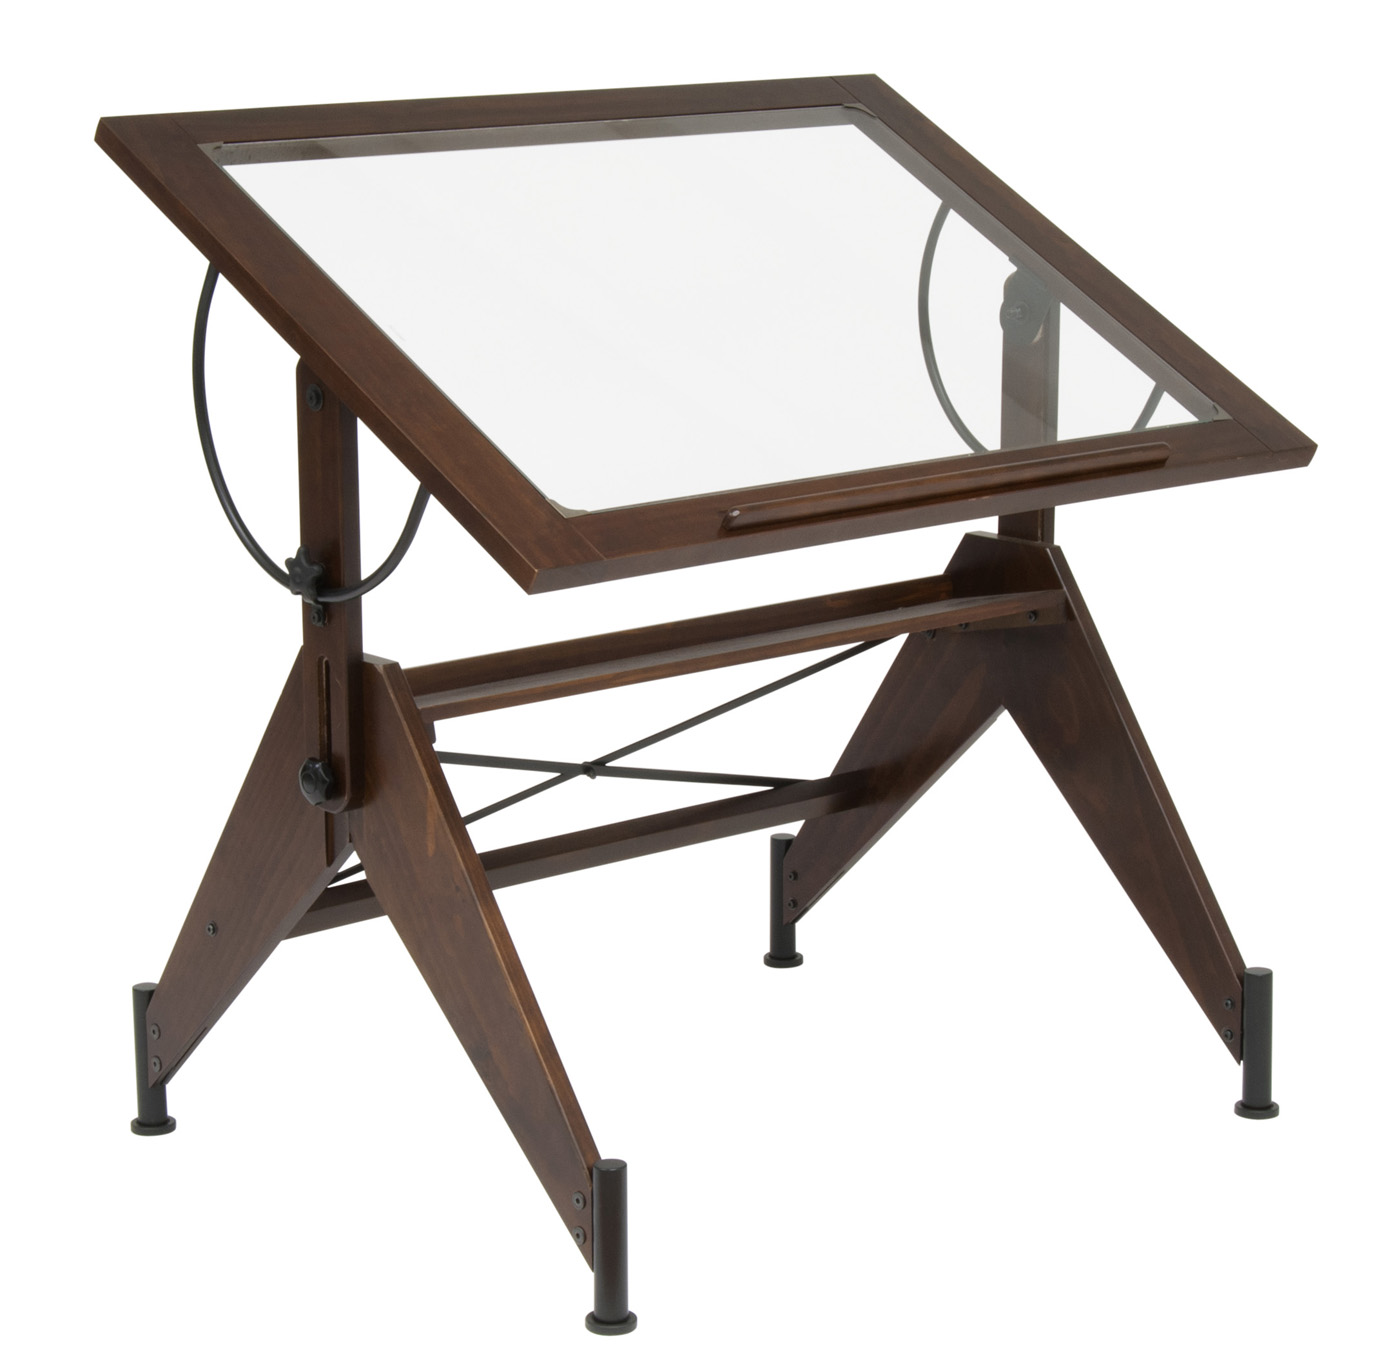 Aries glass top drafting table by studio designs in drafting tables - Drafting table designs ...